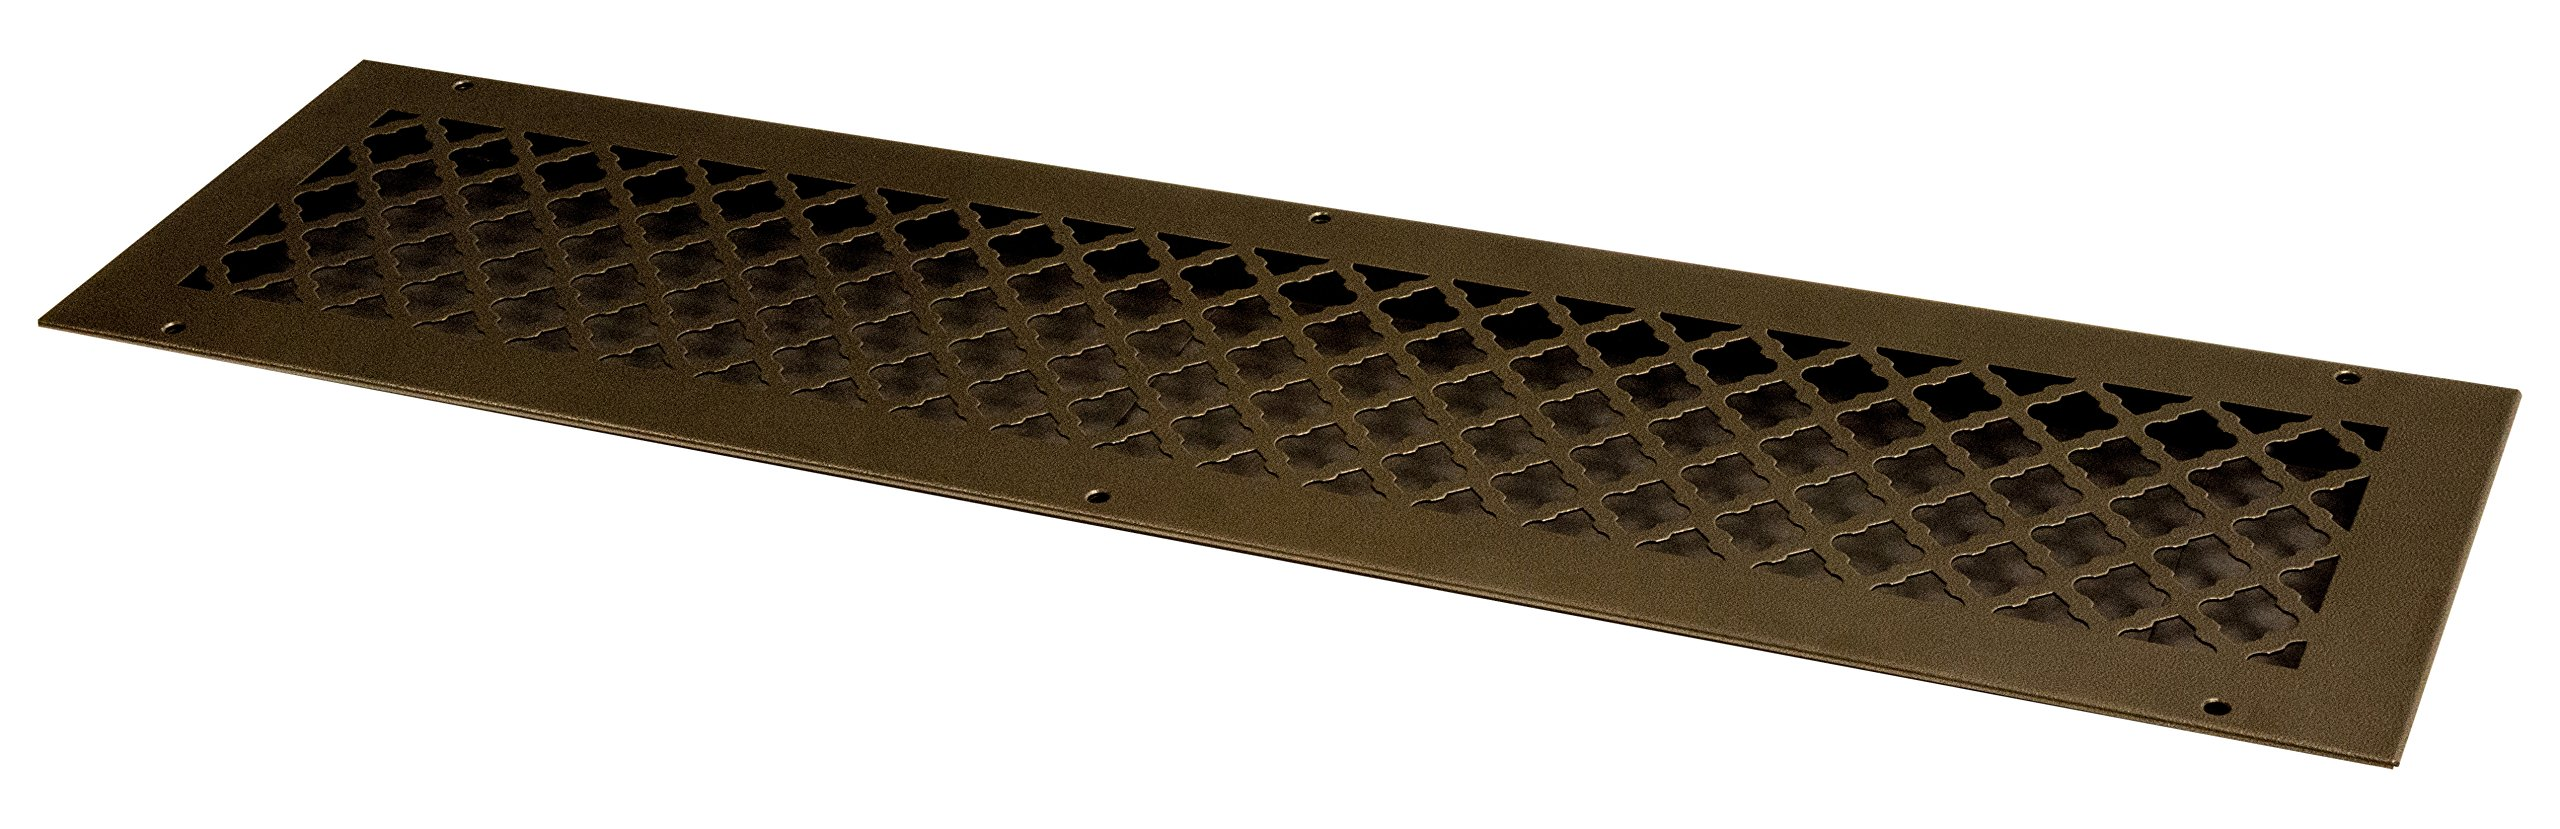 SteelCrest BTU30X6RORBH Bronze Series Designer Wall/Ceiling Vent Cover, with Mounting Screws, Oil Rubbed Bronze